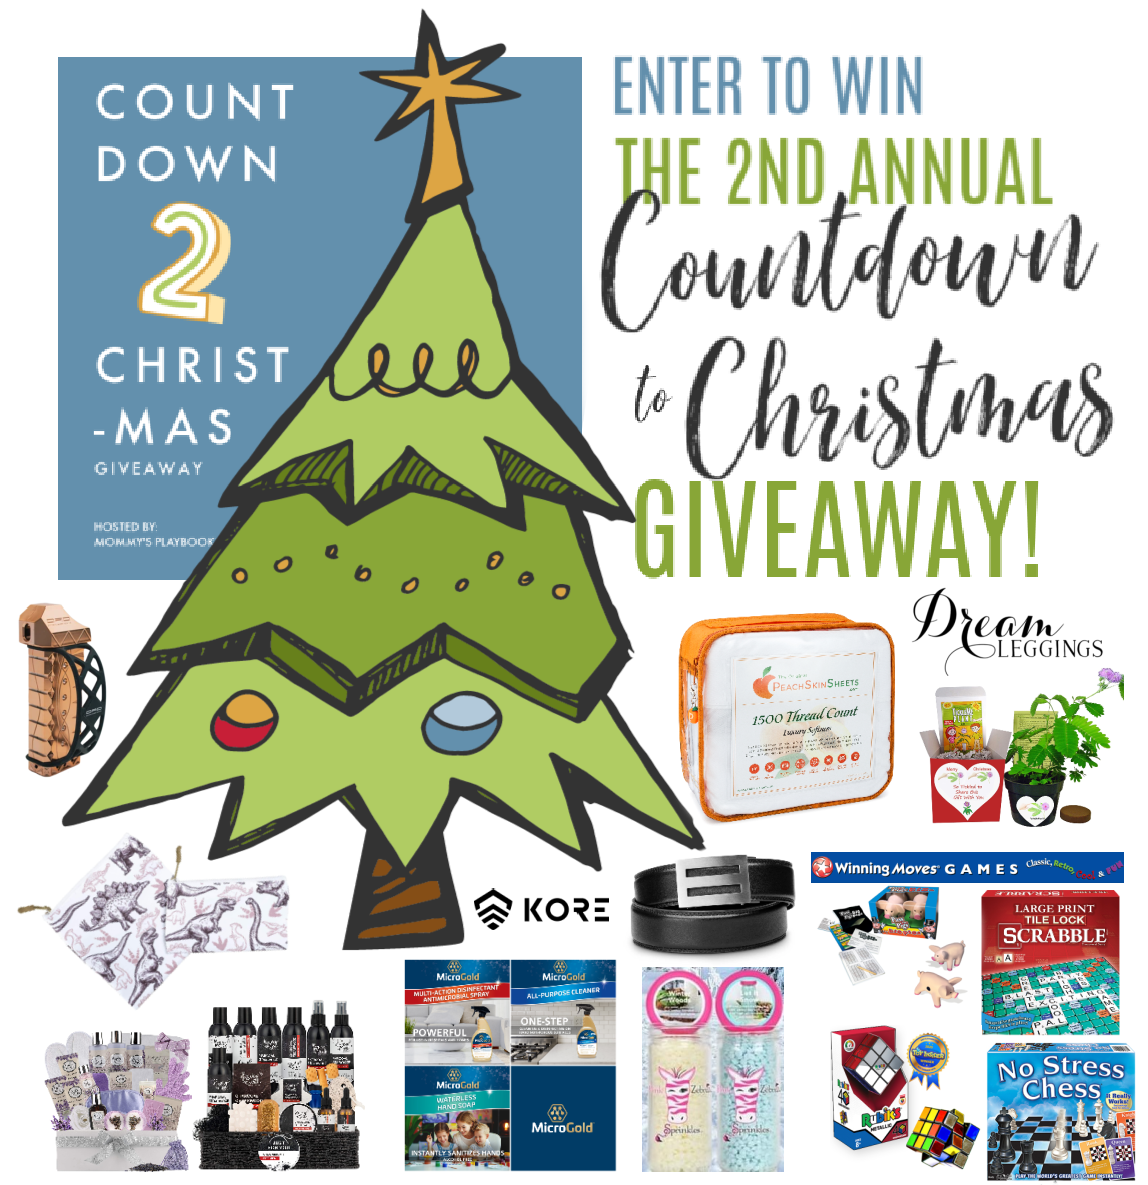 Countdown to Christmas Giveaway Prizes